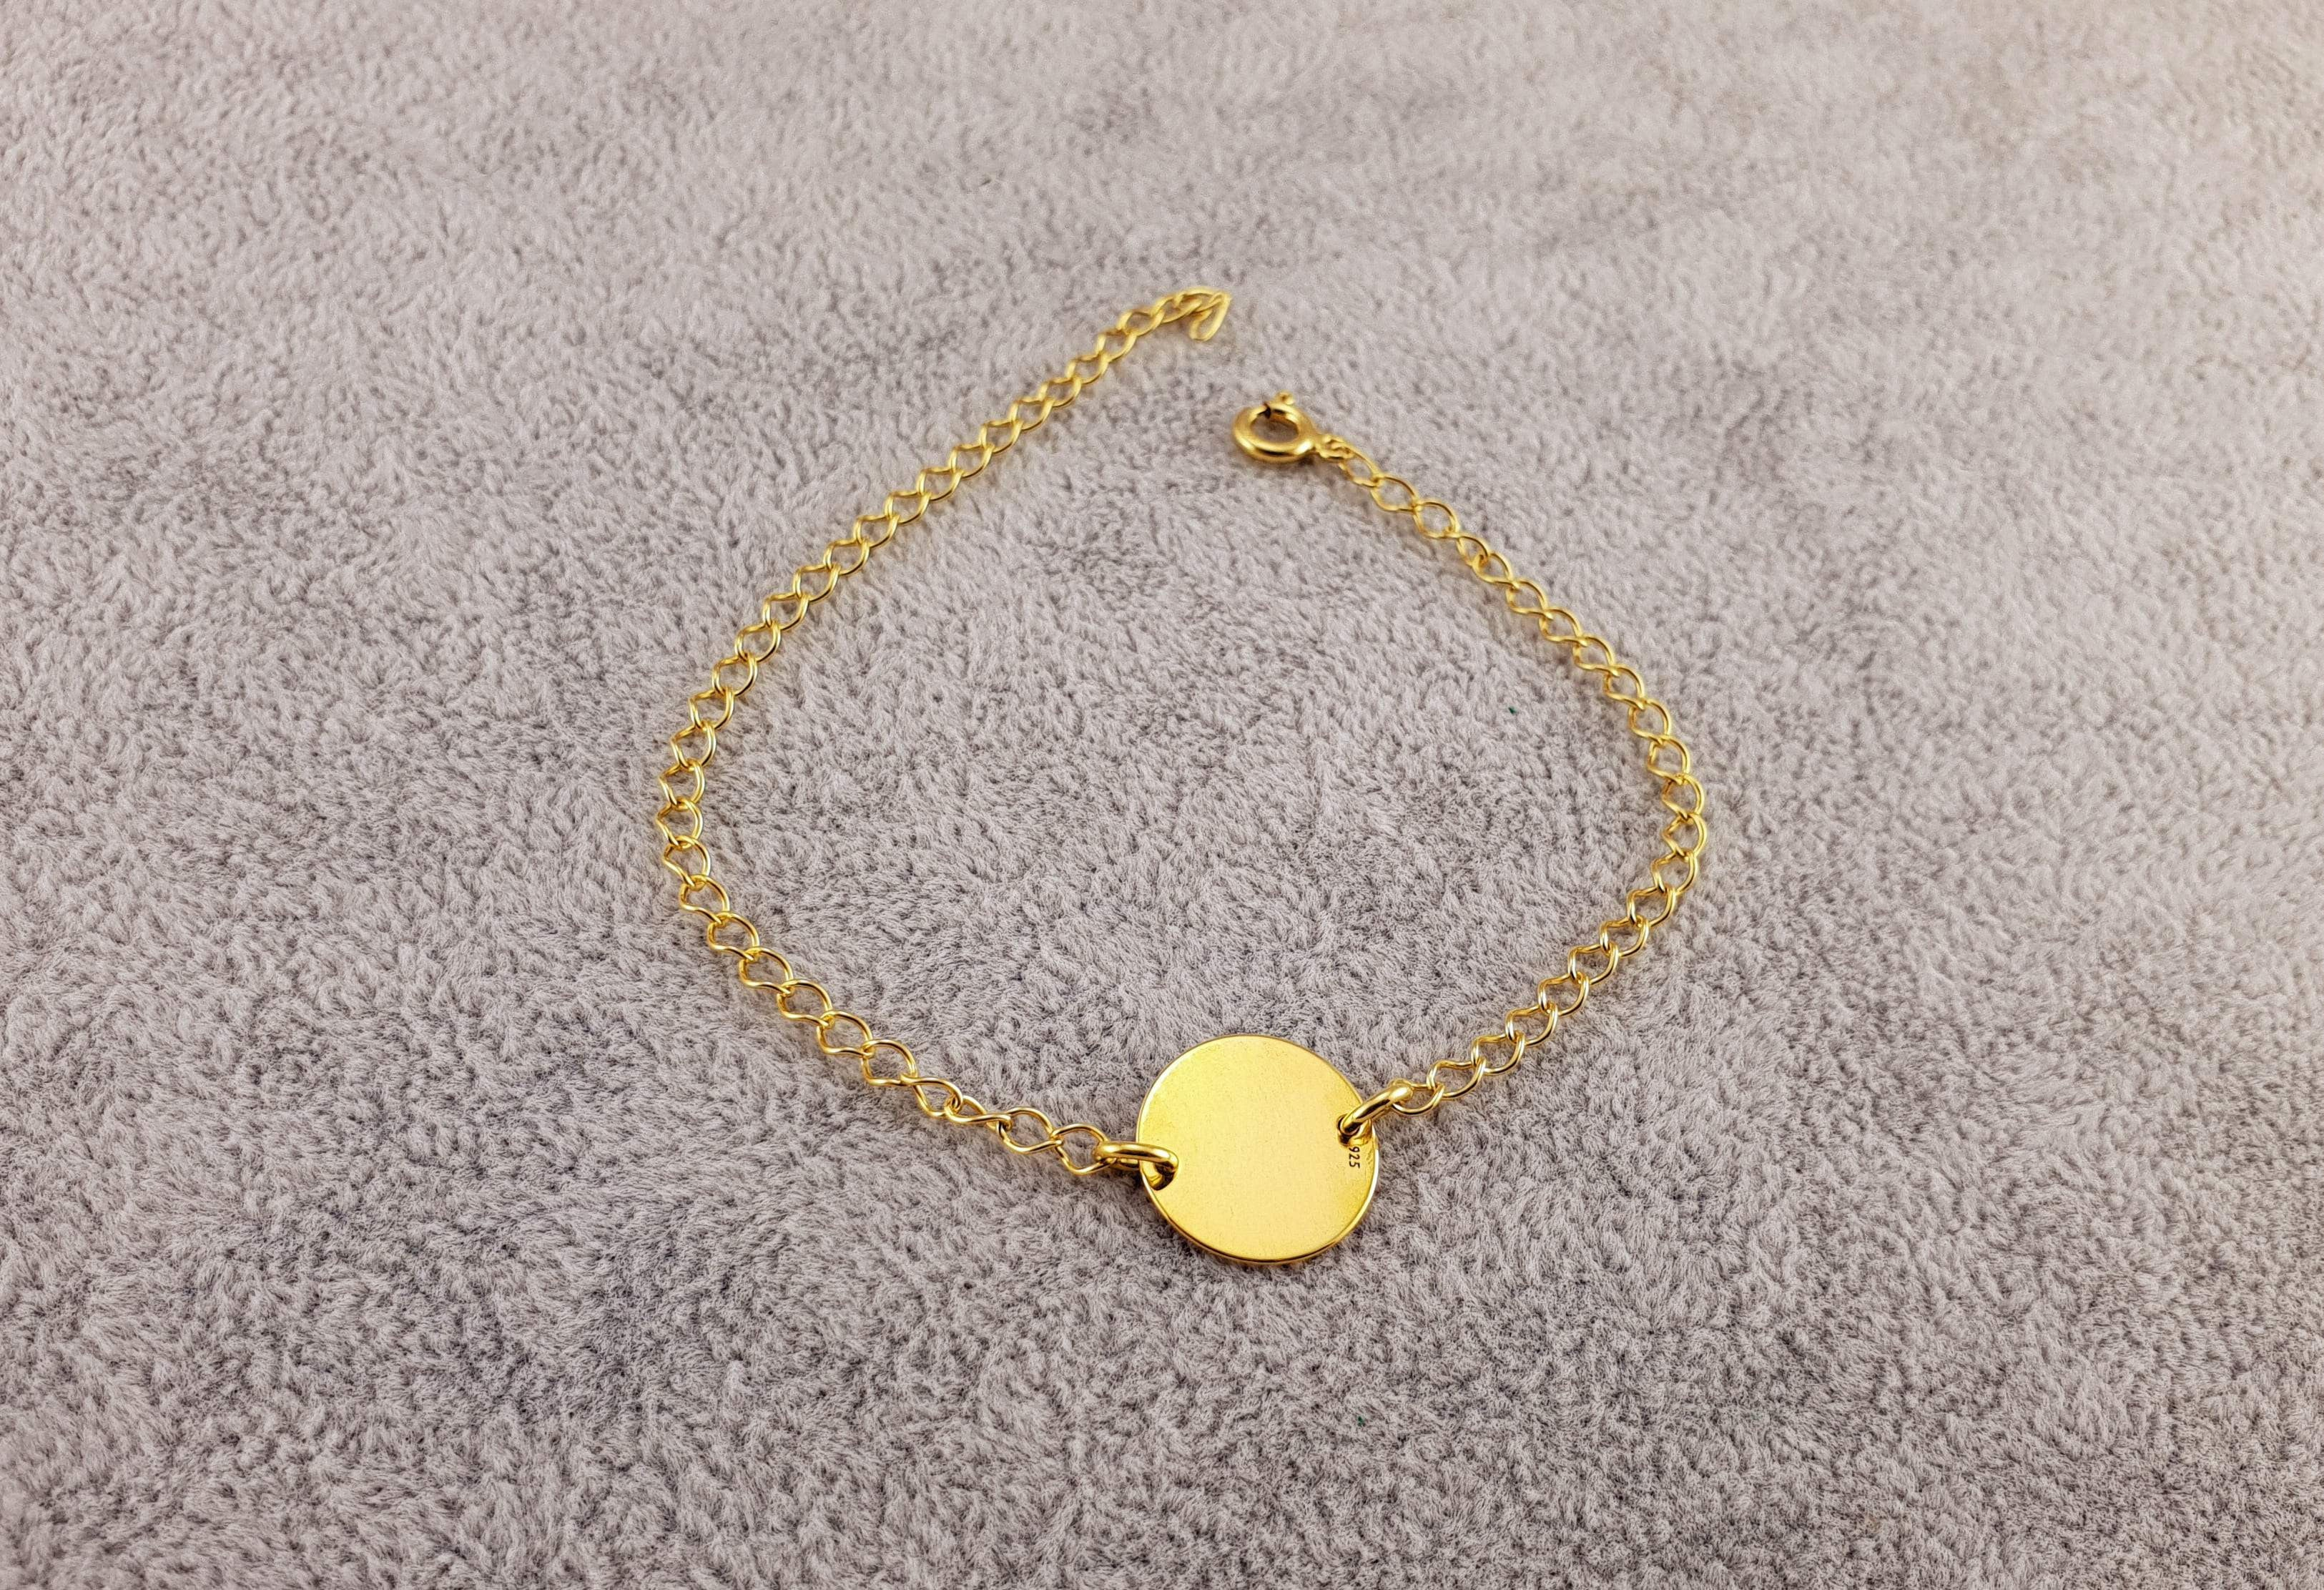 GOLD PLATED 24K BRACELET - GOLDEN COIN - By Janine Jewellery